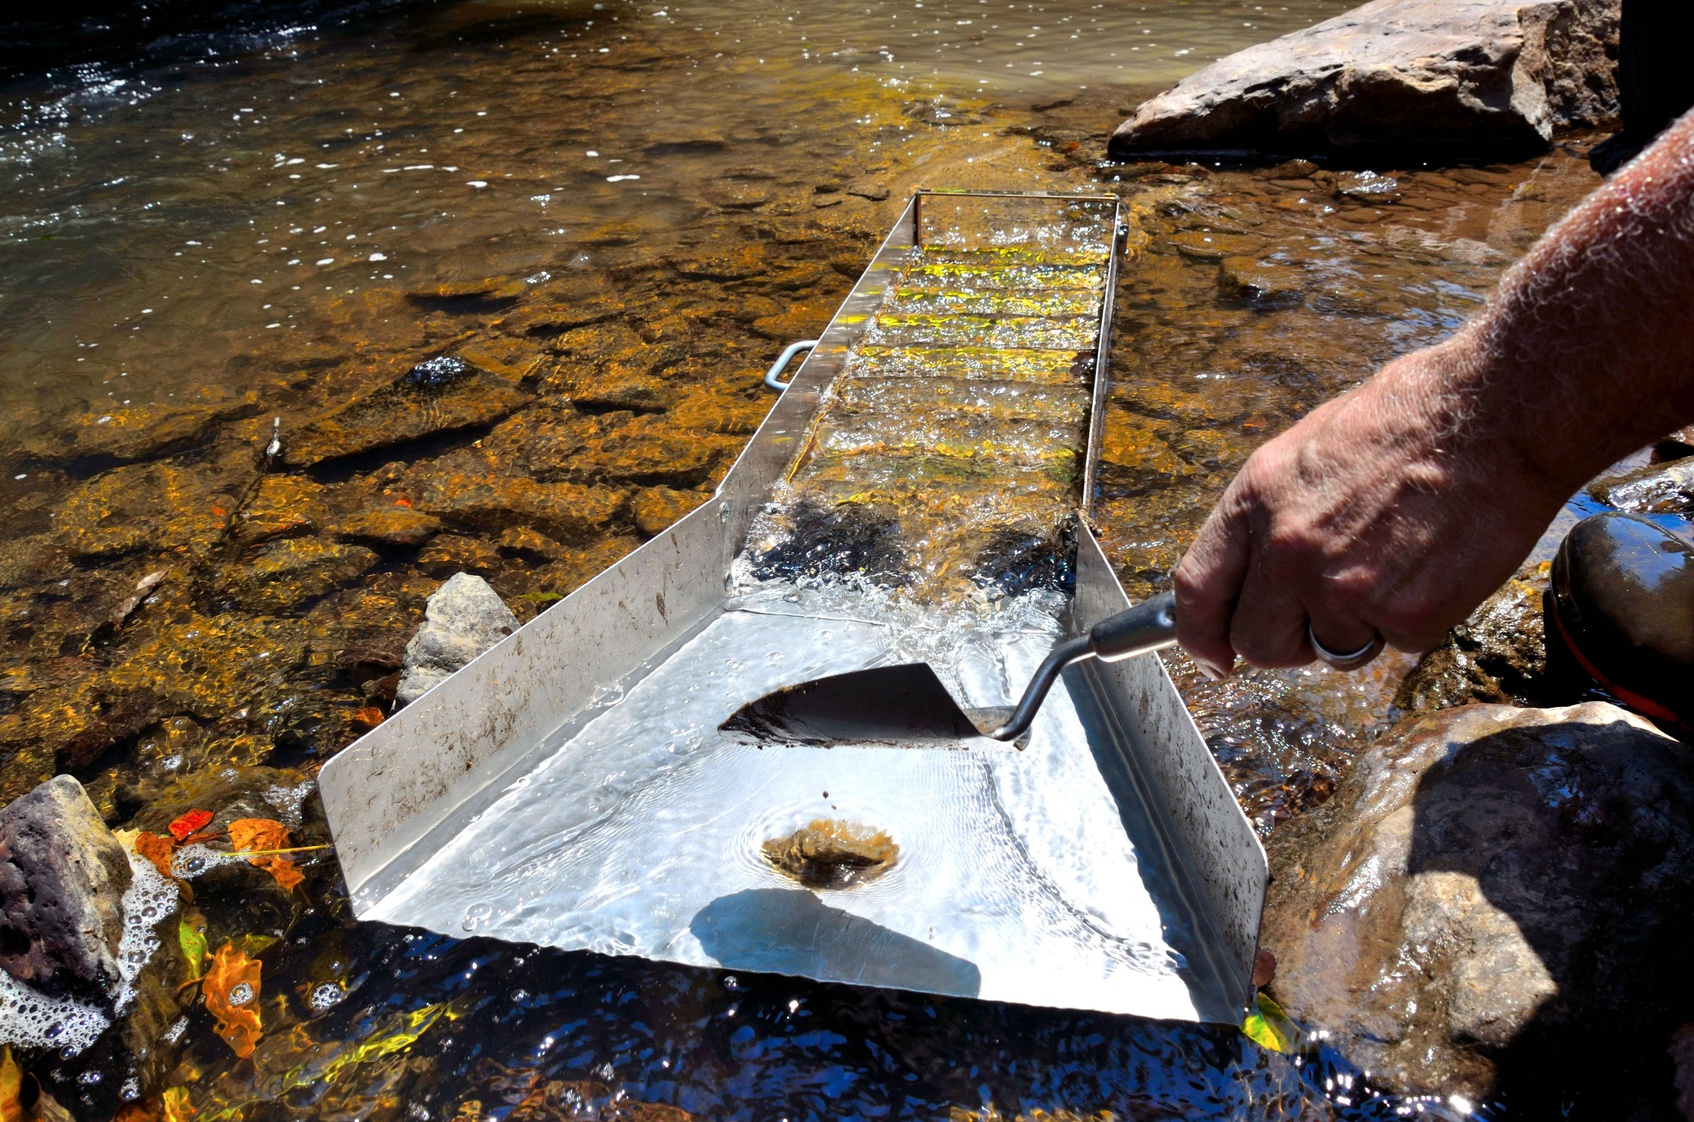 Gold panning with a sluice box in a river